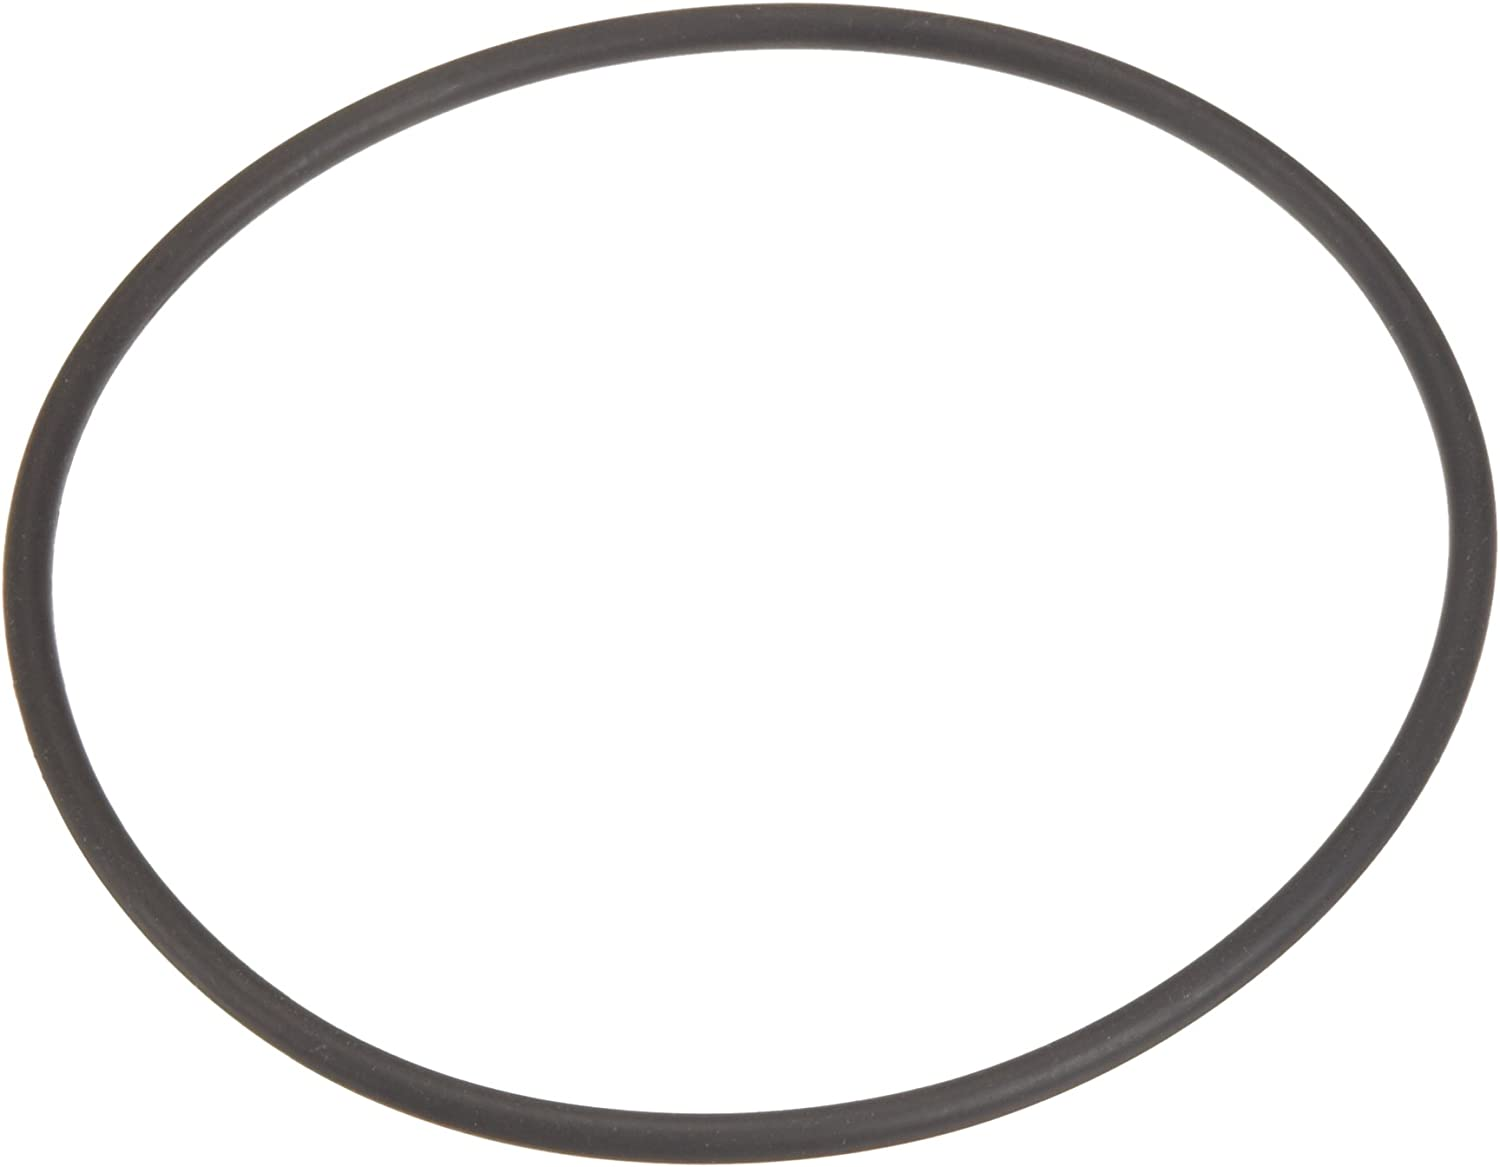 Pentair 35505-1438 Seal Plate O-Ring Replacement for Select Sta-Rite Pool and Spa Aboveground Pump